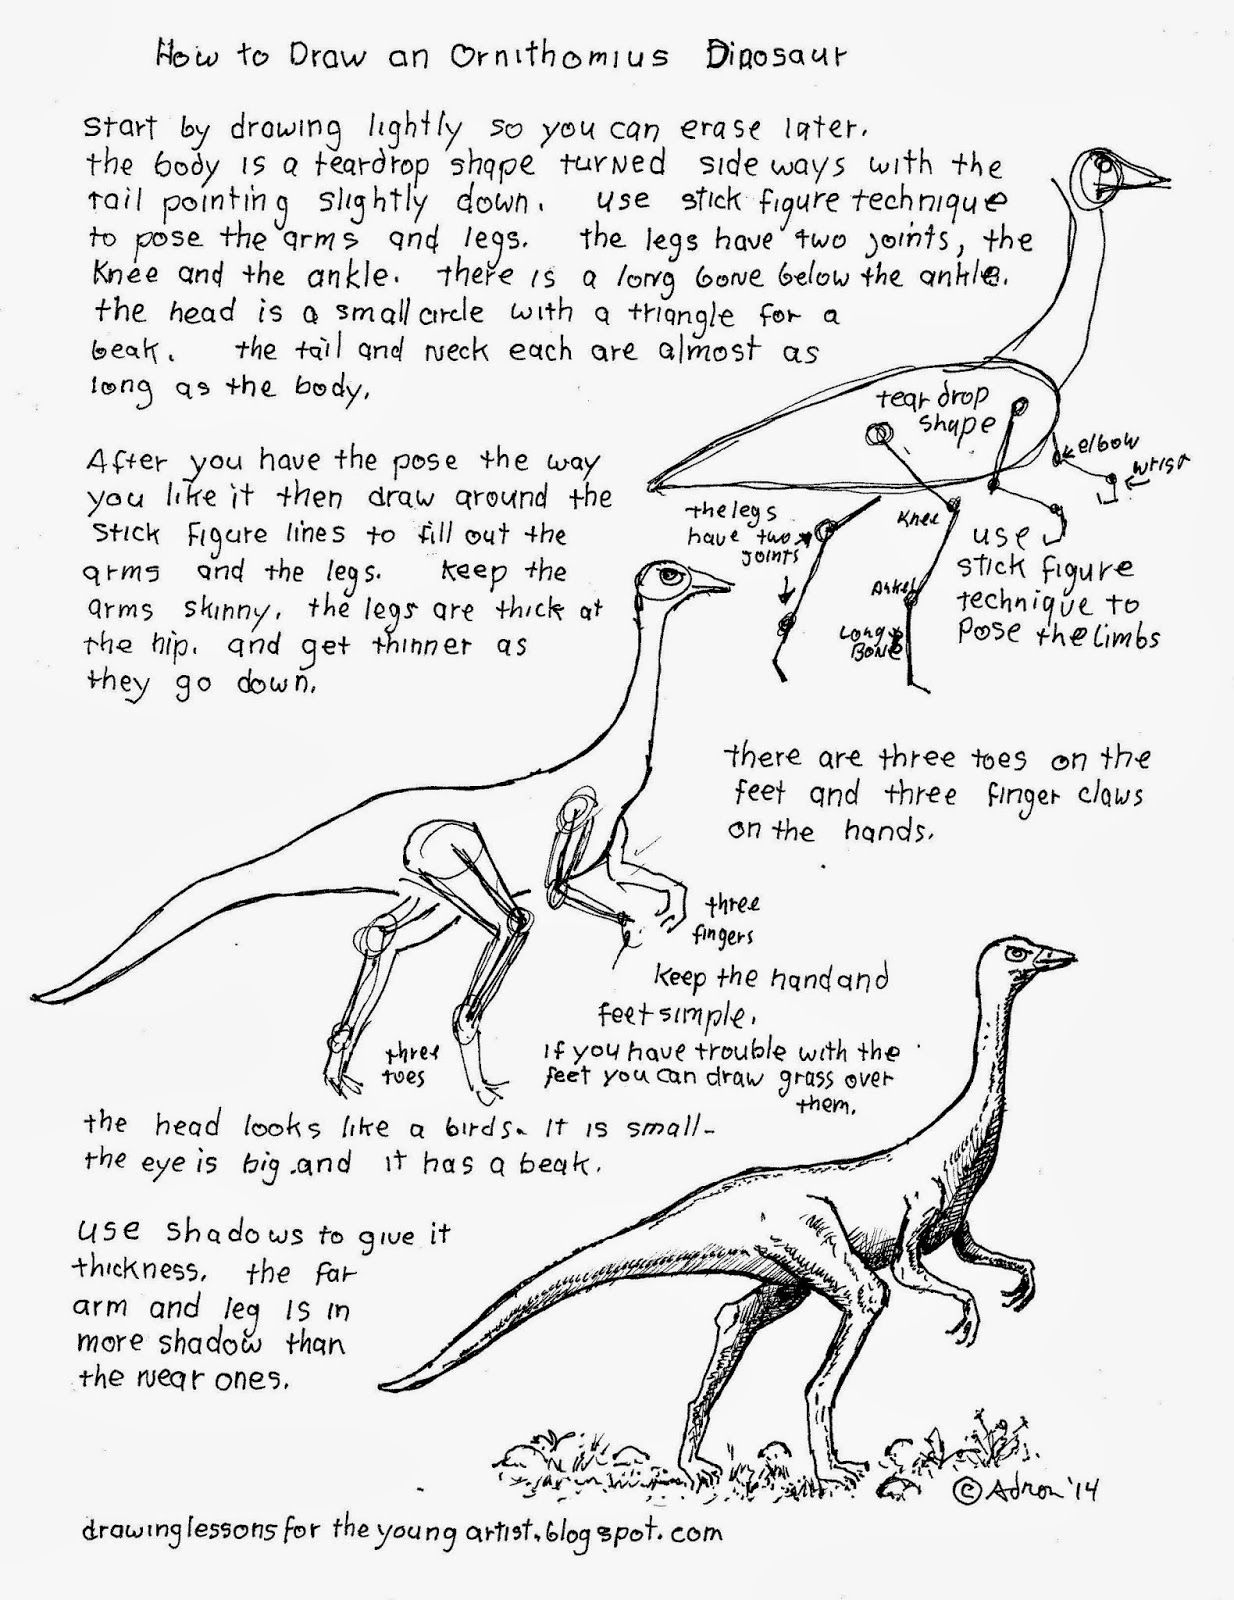 How To Draw An Ornithomimus Dinosaur Worksheet